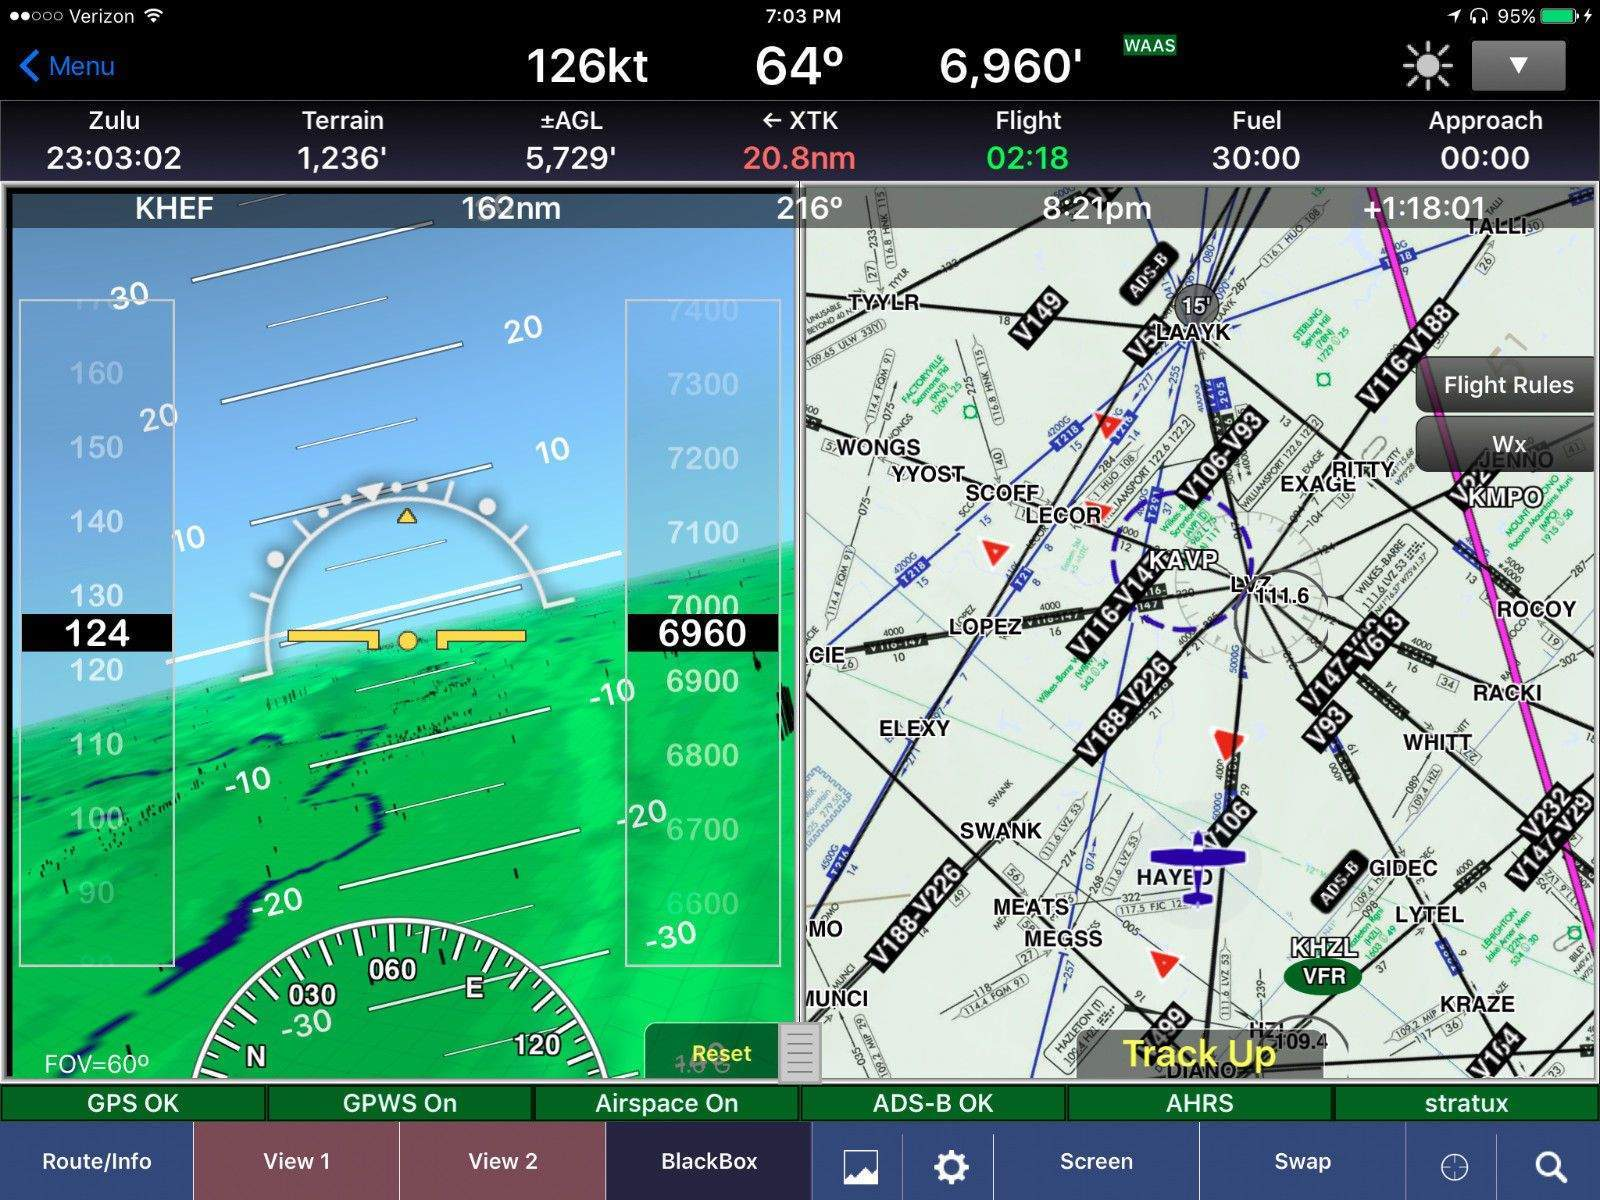 Stratux ADS-B Dual Band Aviation Receiver Kit - AHRS, GPS, and Case